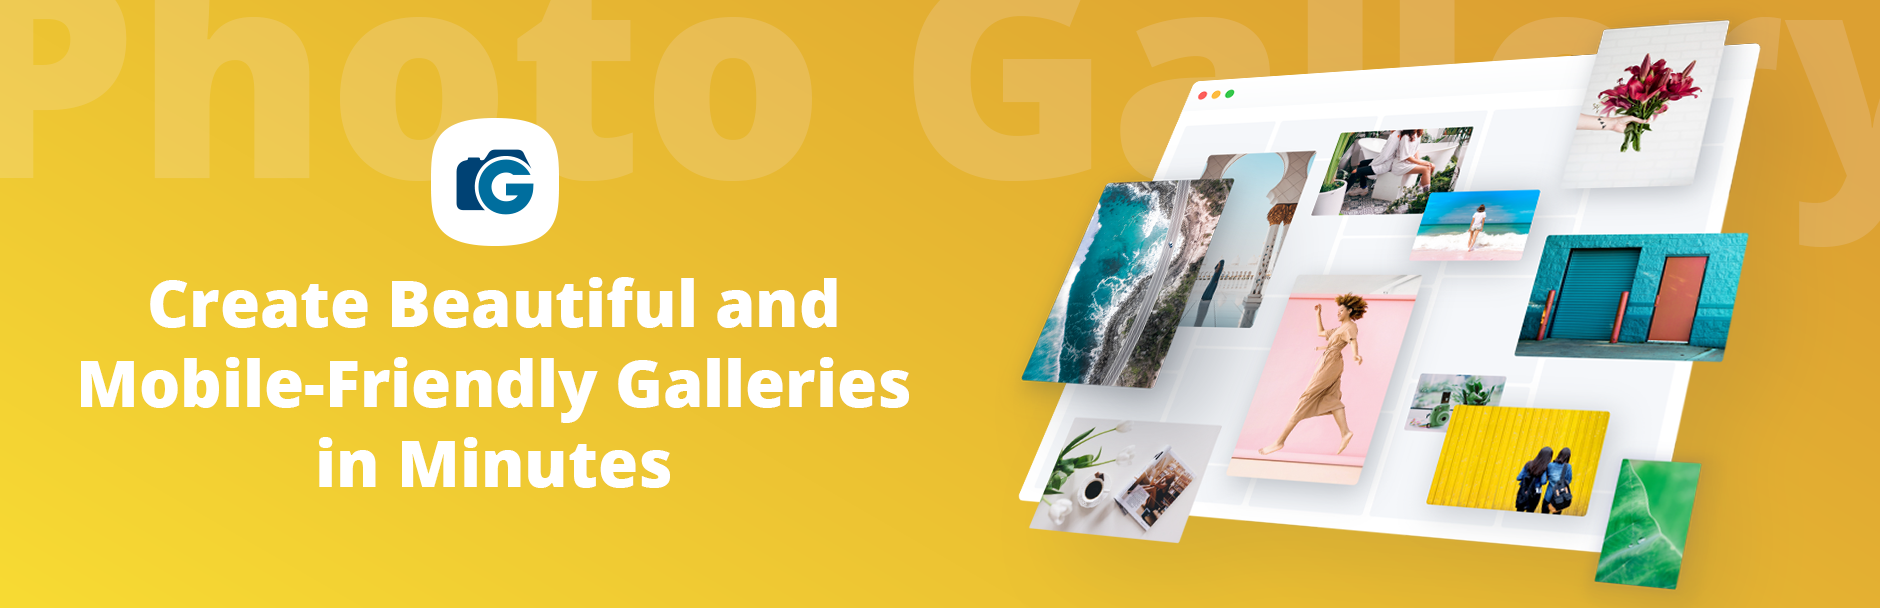 Gallery by 10Web – Mobile Friendly Image Gallery